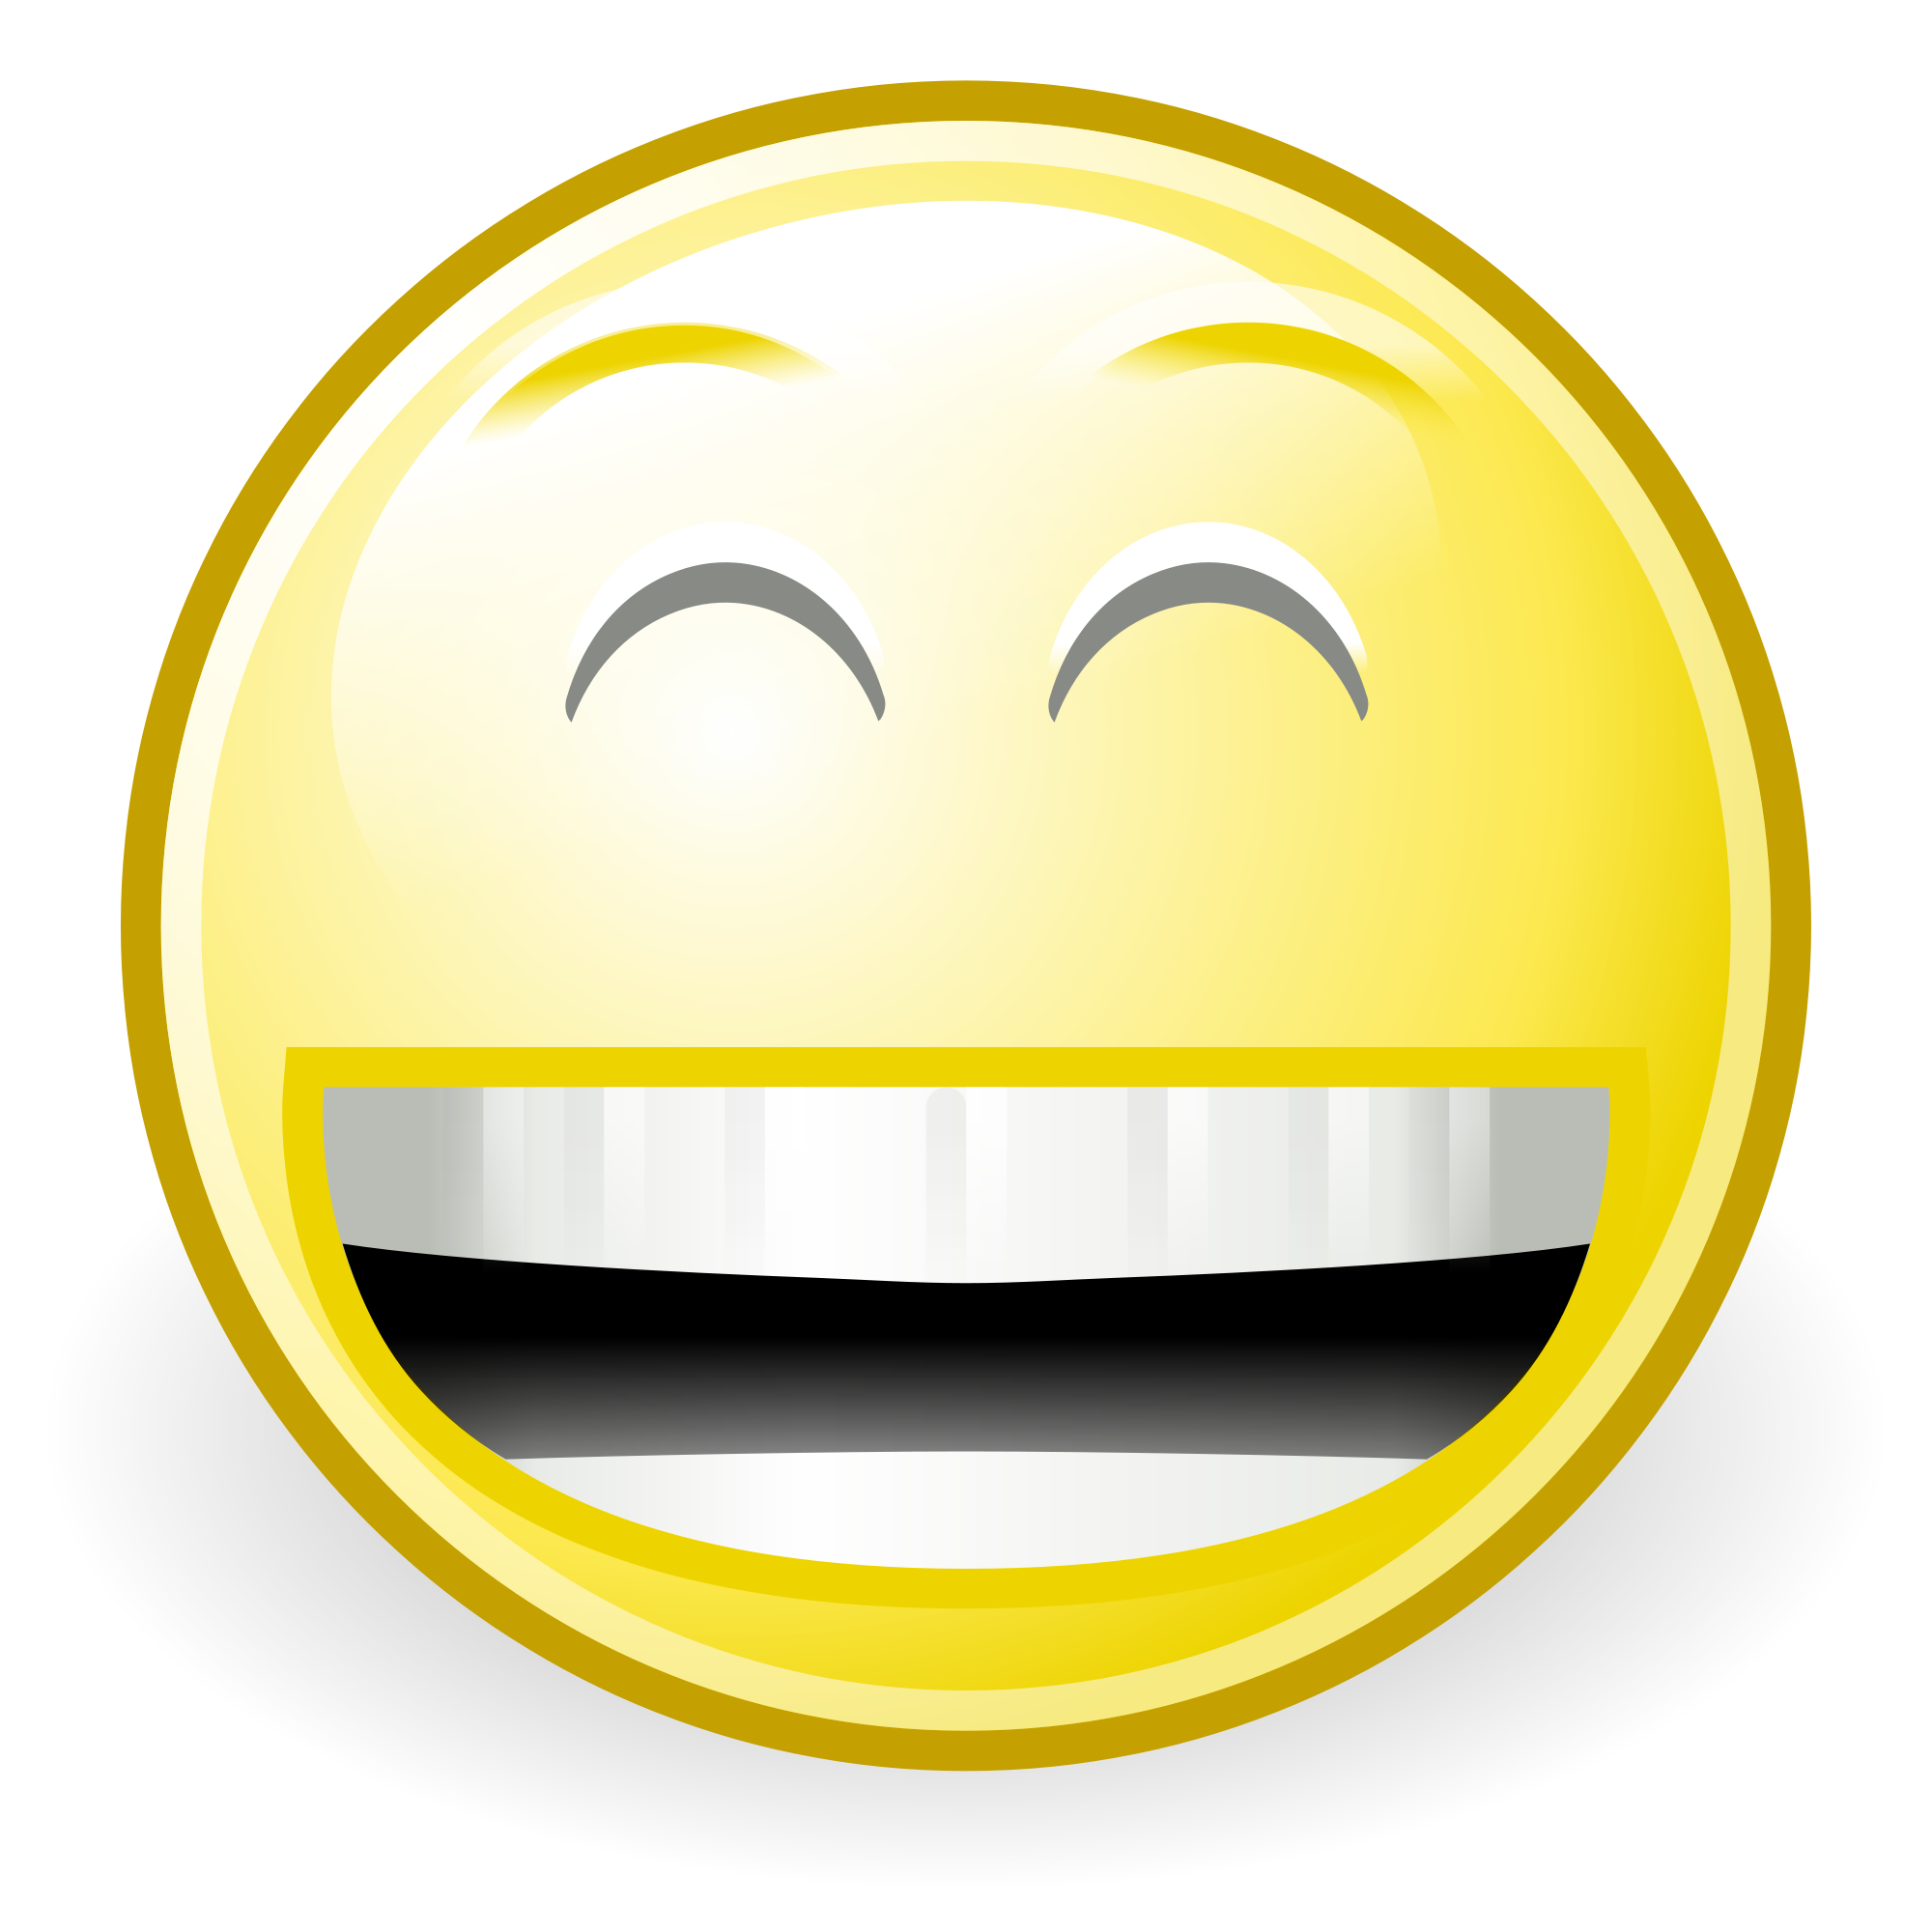 Funny Laughing Face Cartoon - ClipArt - 409.6KB